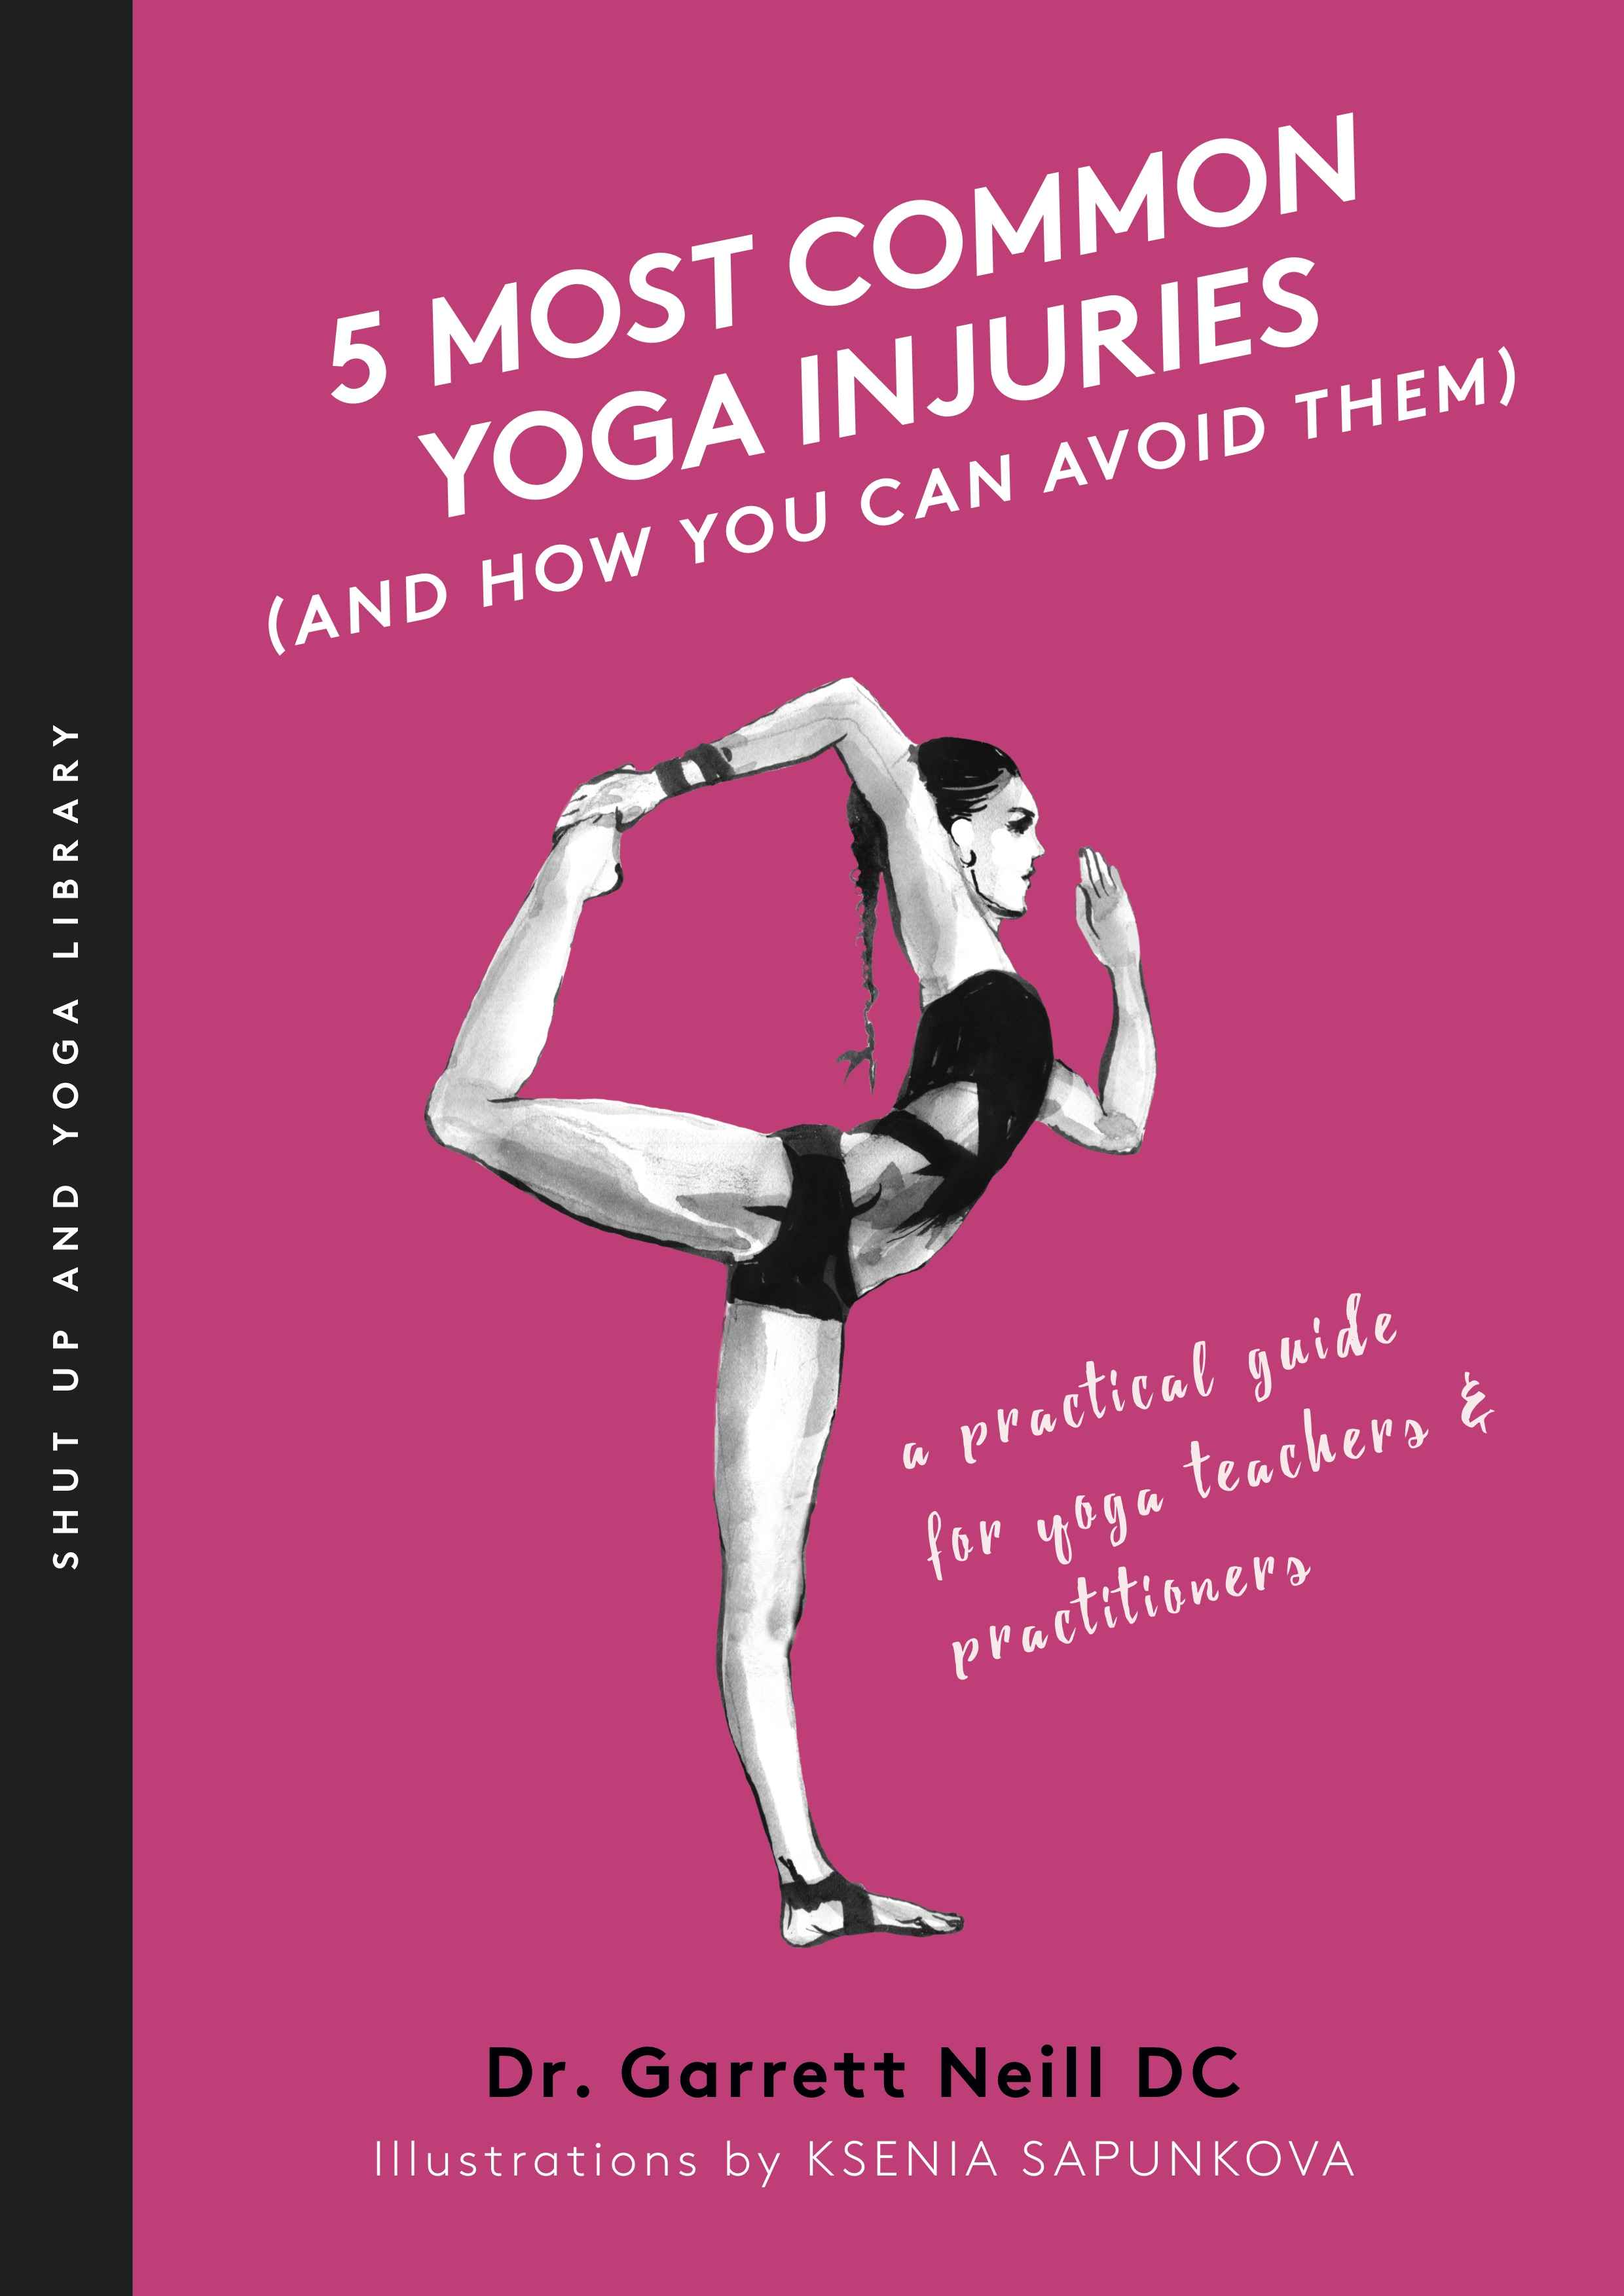 cb84577761d 5 Most Common Yoga Injuries Book — Shut Up   Yoga